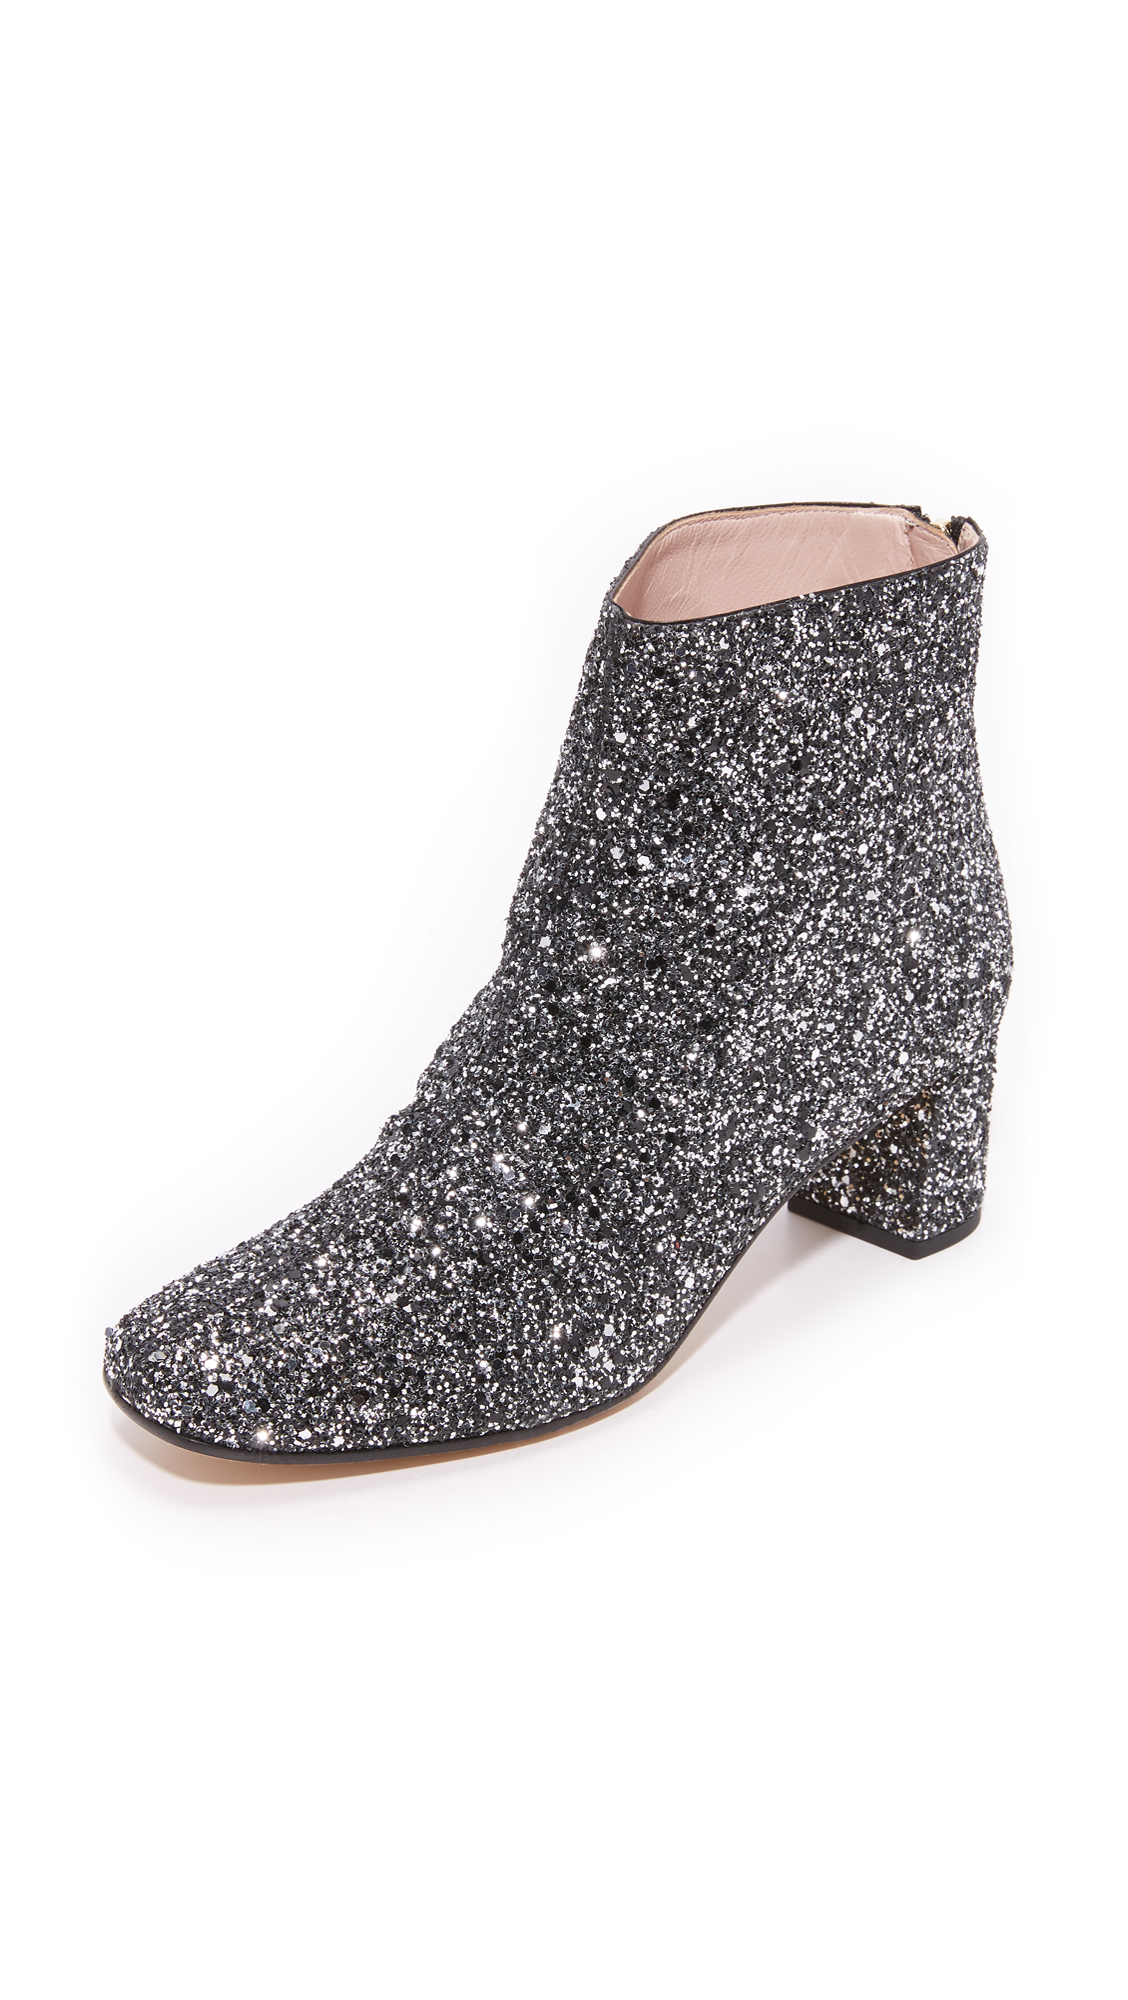 Kate Spade New York Tal Glitter Booties - Black/Silver